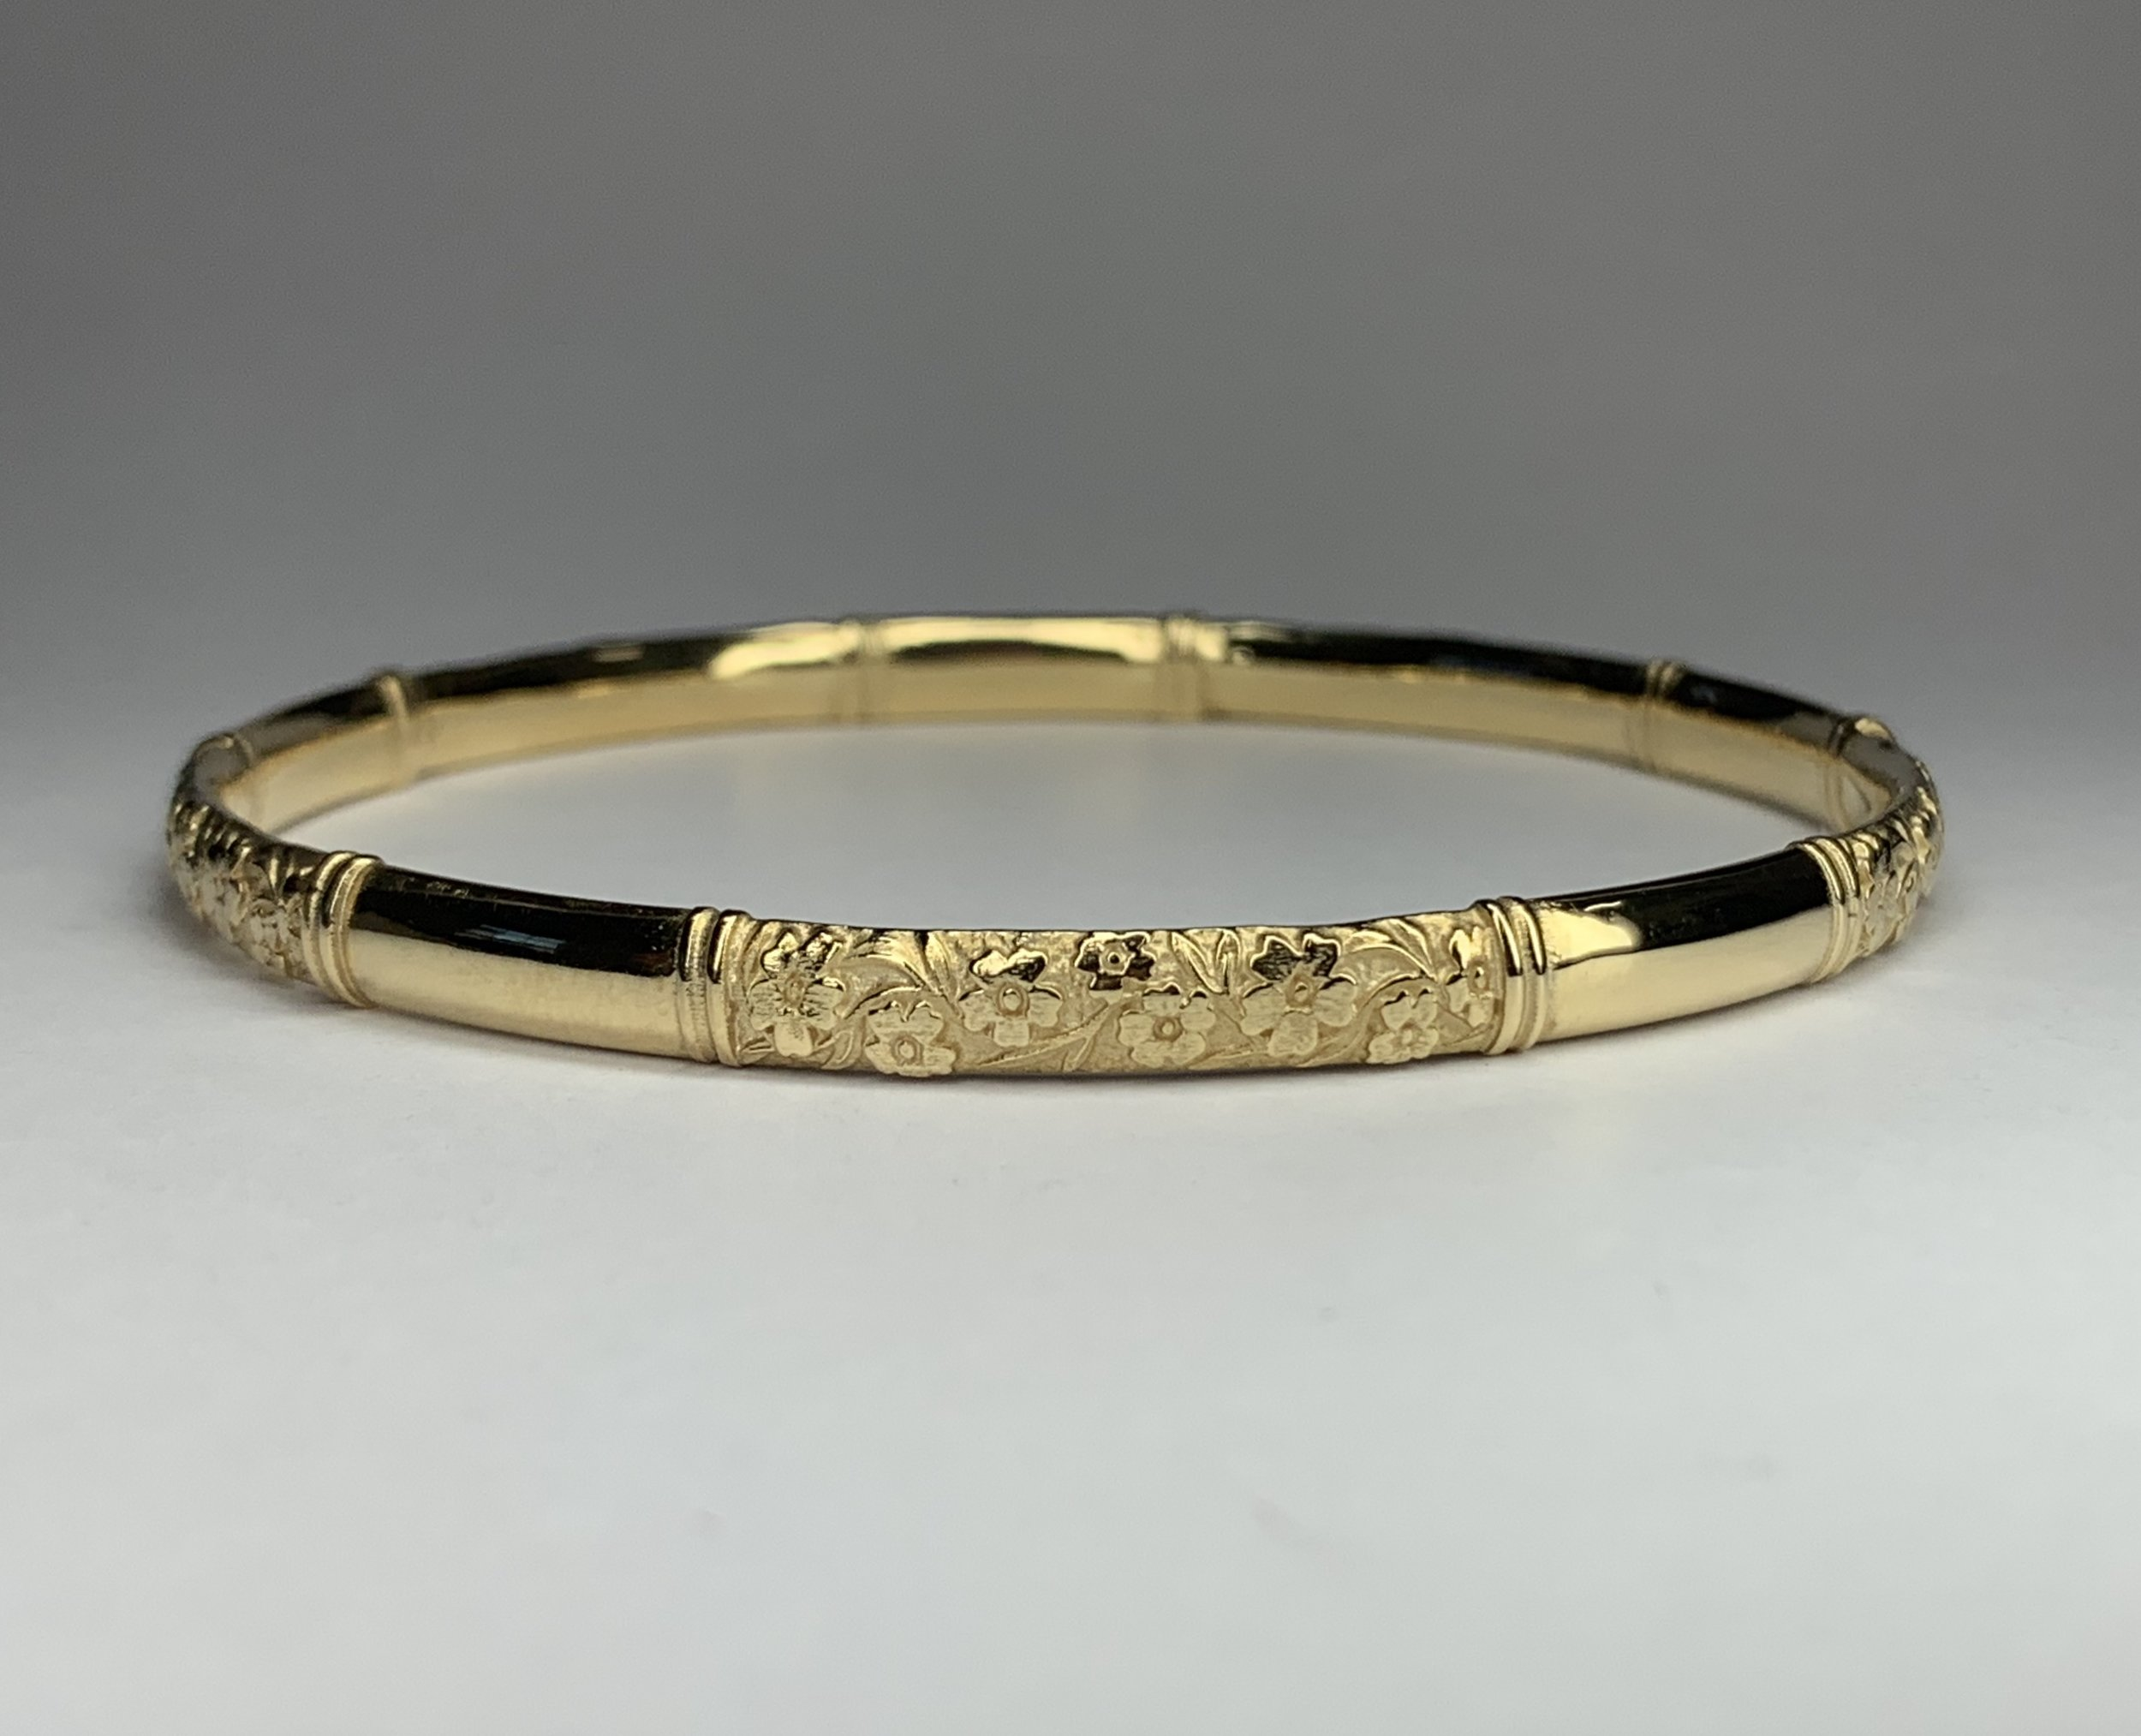 Yellow gold slave bangle with raised forget me not sections alternating with high polished sections. Made in Chichester, England.